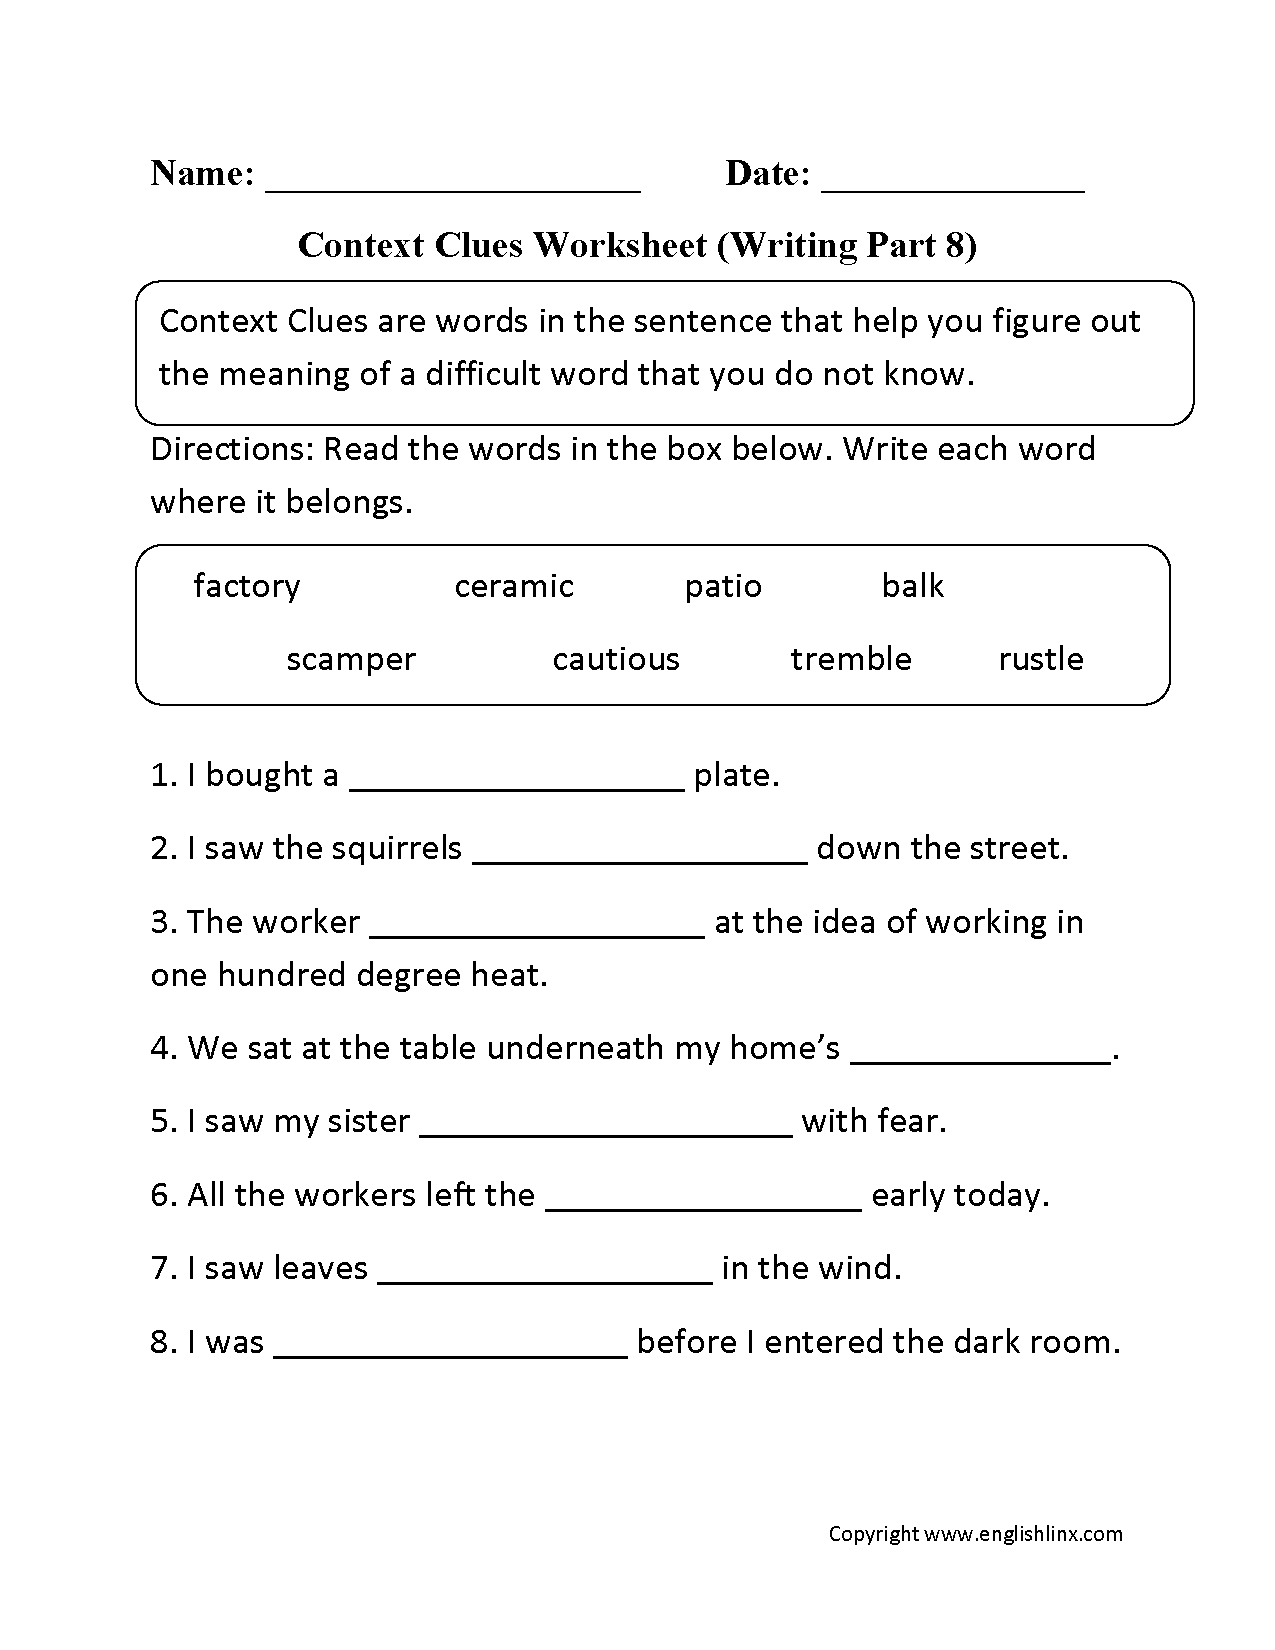 worksheet Worksheet Context Clues context clues warm ups printable worksheets from englishlinx com worksheet writing part 9 intermediate